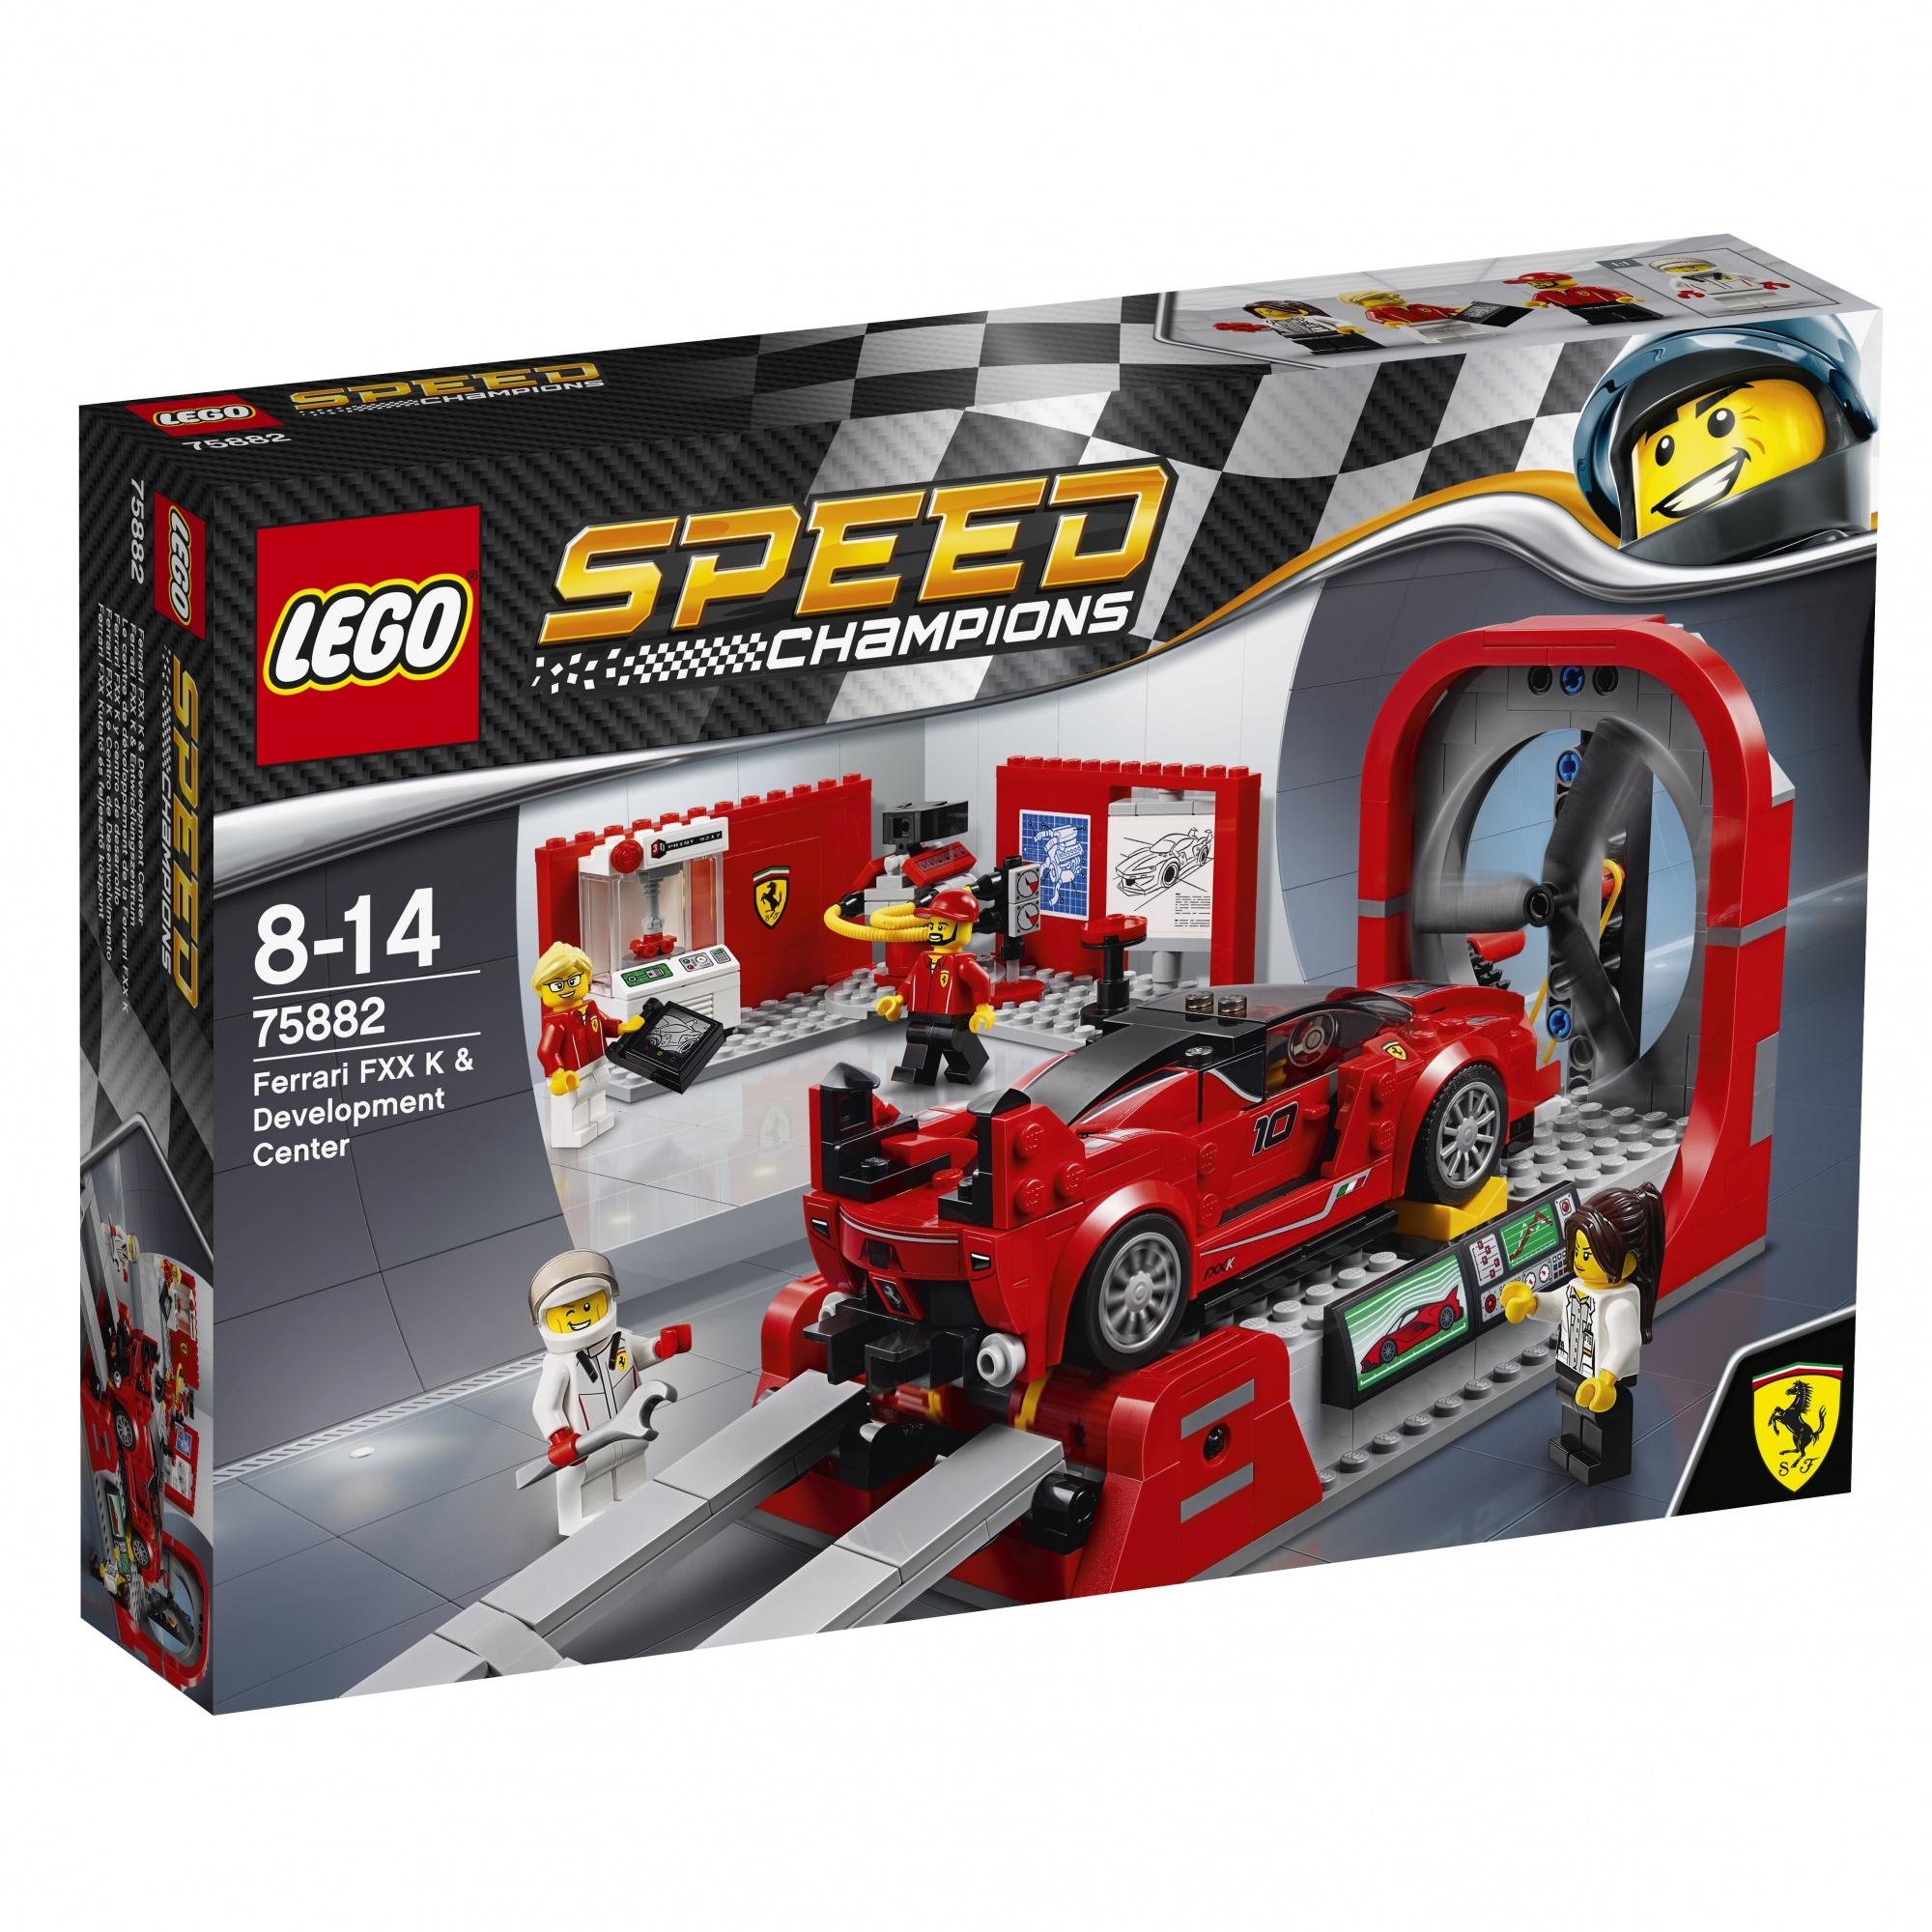 Lego Speed Champions Ferrari FXX K & Development Center